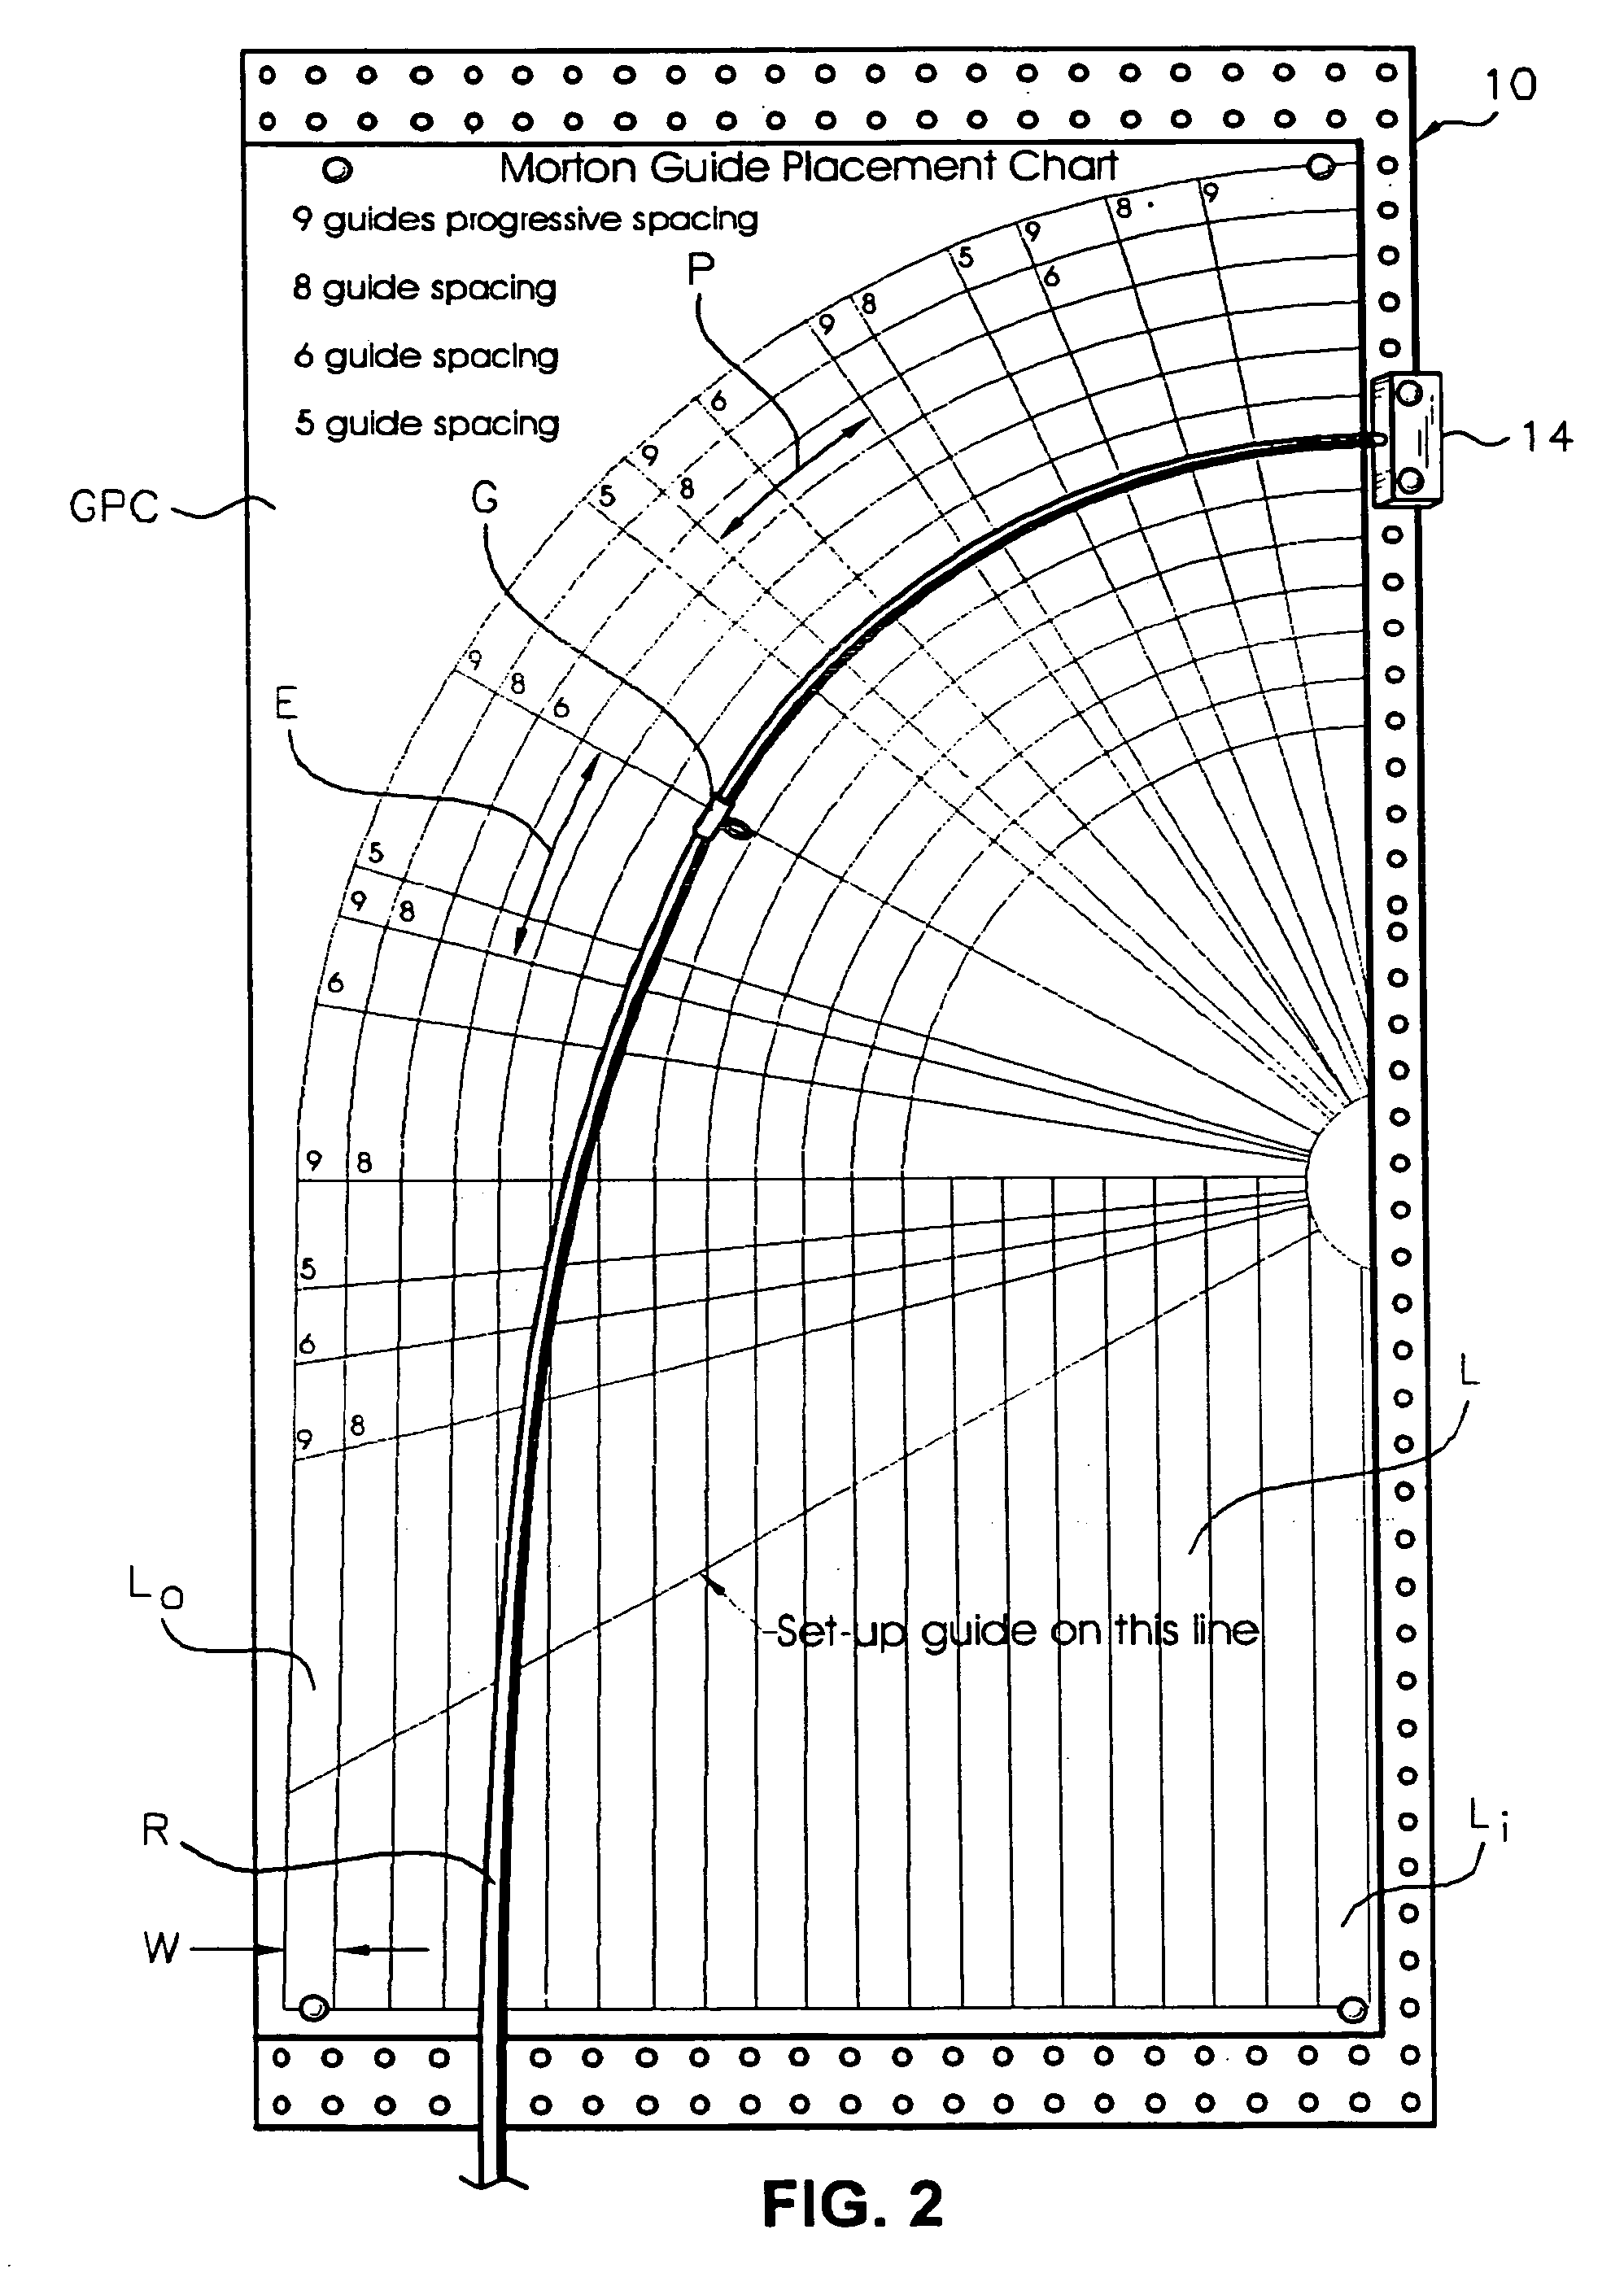 Patent Us7251903 Method For Spacing Guides On Fishing